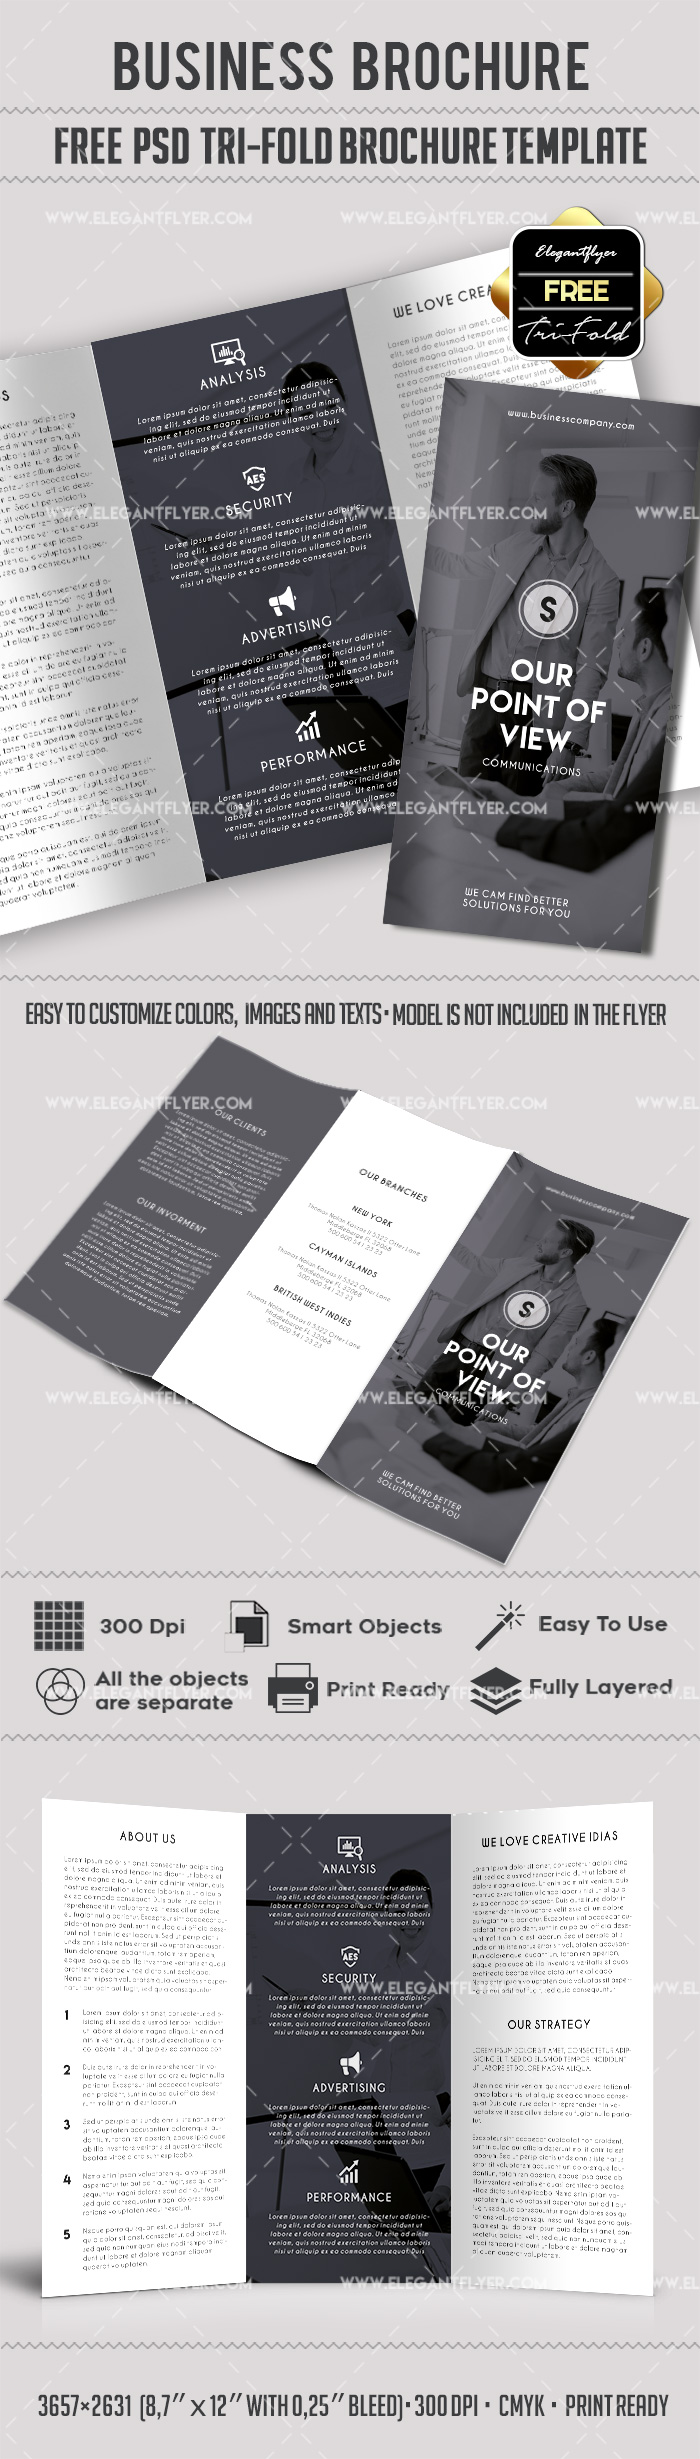 Business – Free PSD Tri-Fold PSD Brochure Template